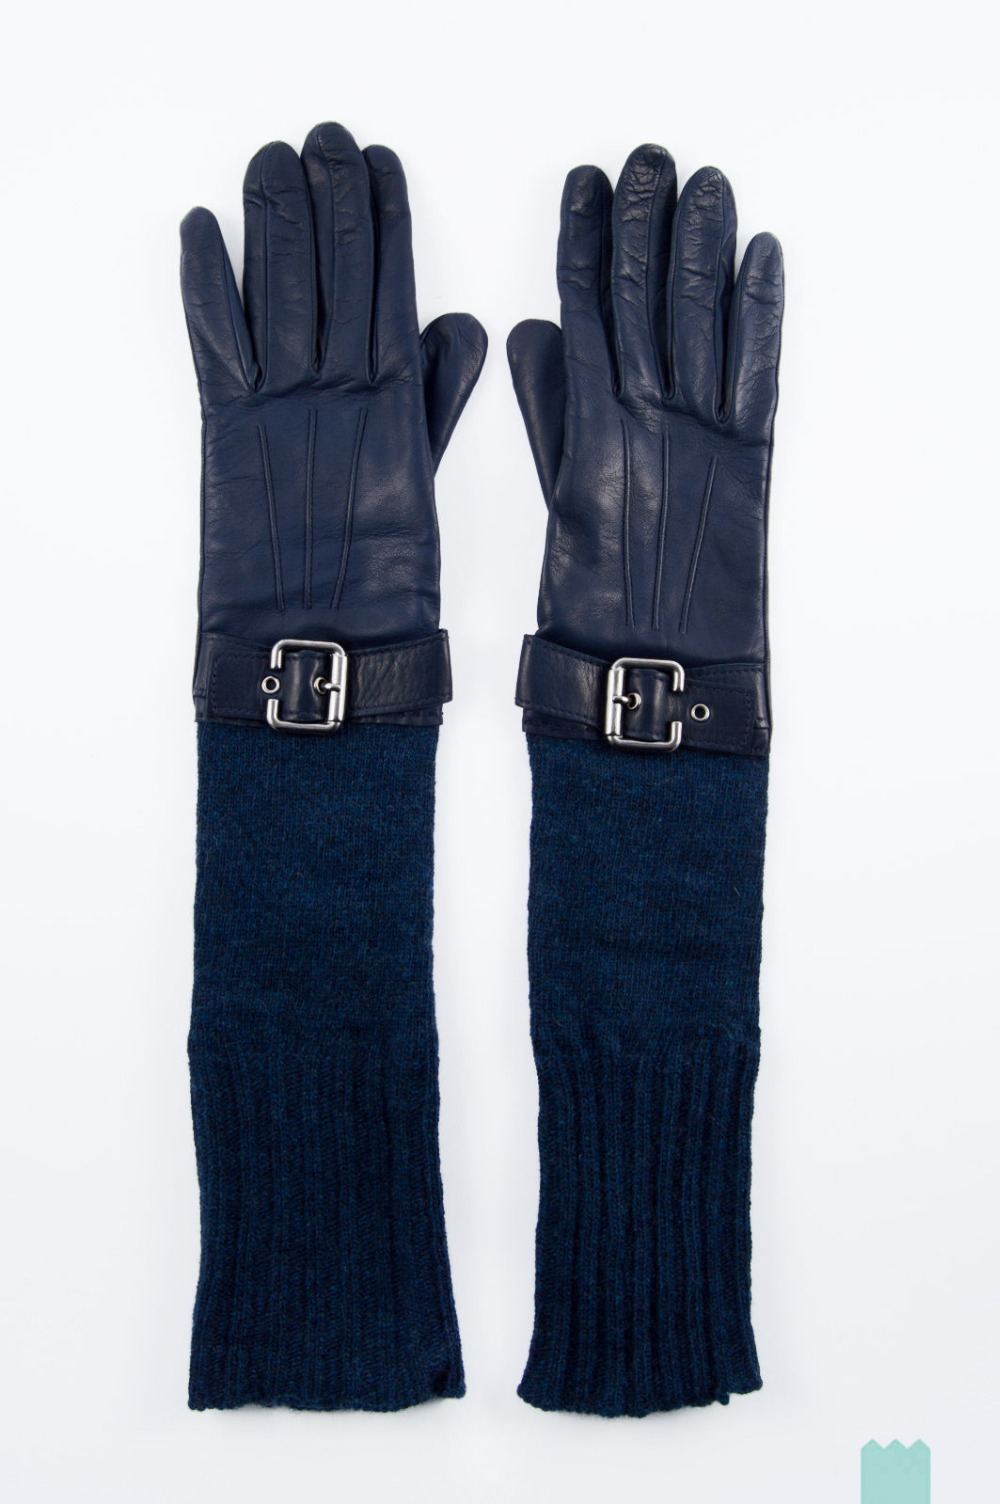 Lady navy blue long leather gloves splice customized knit wool